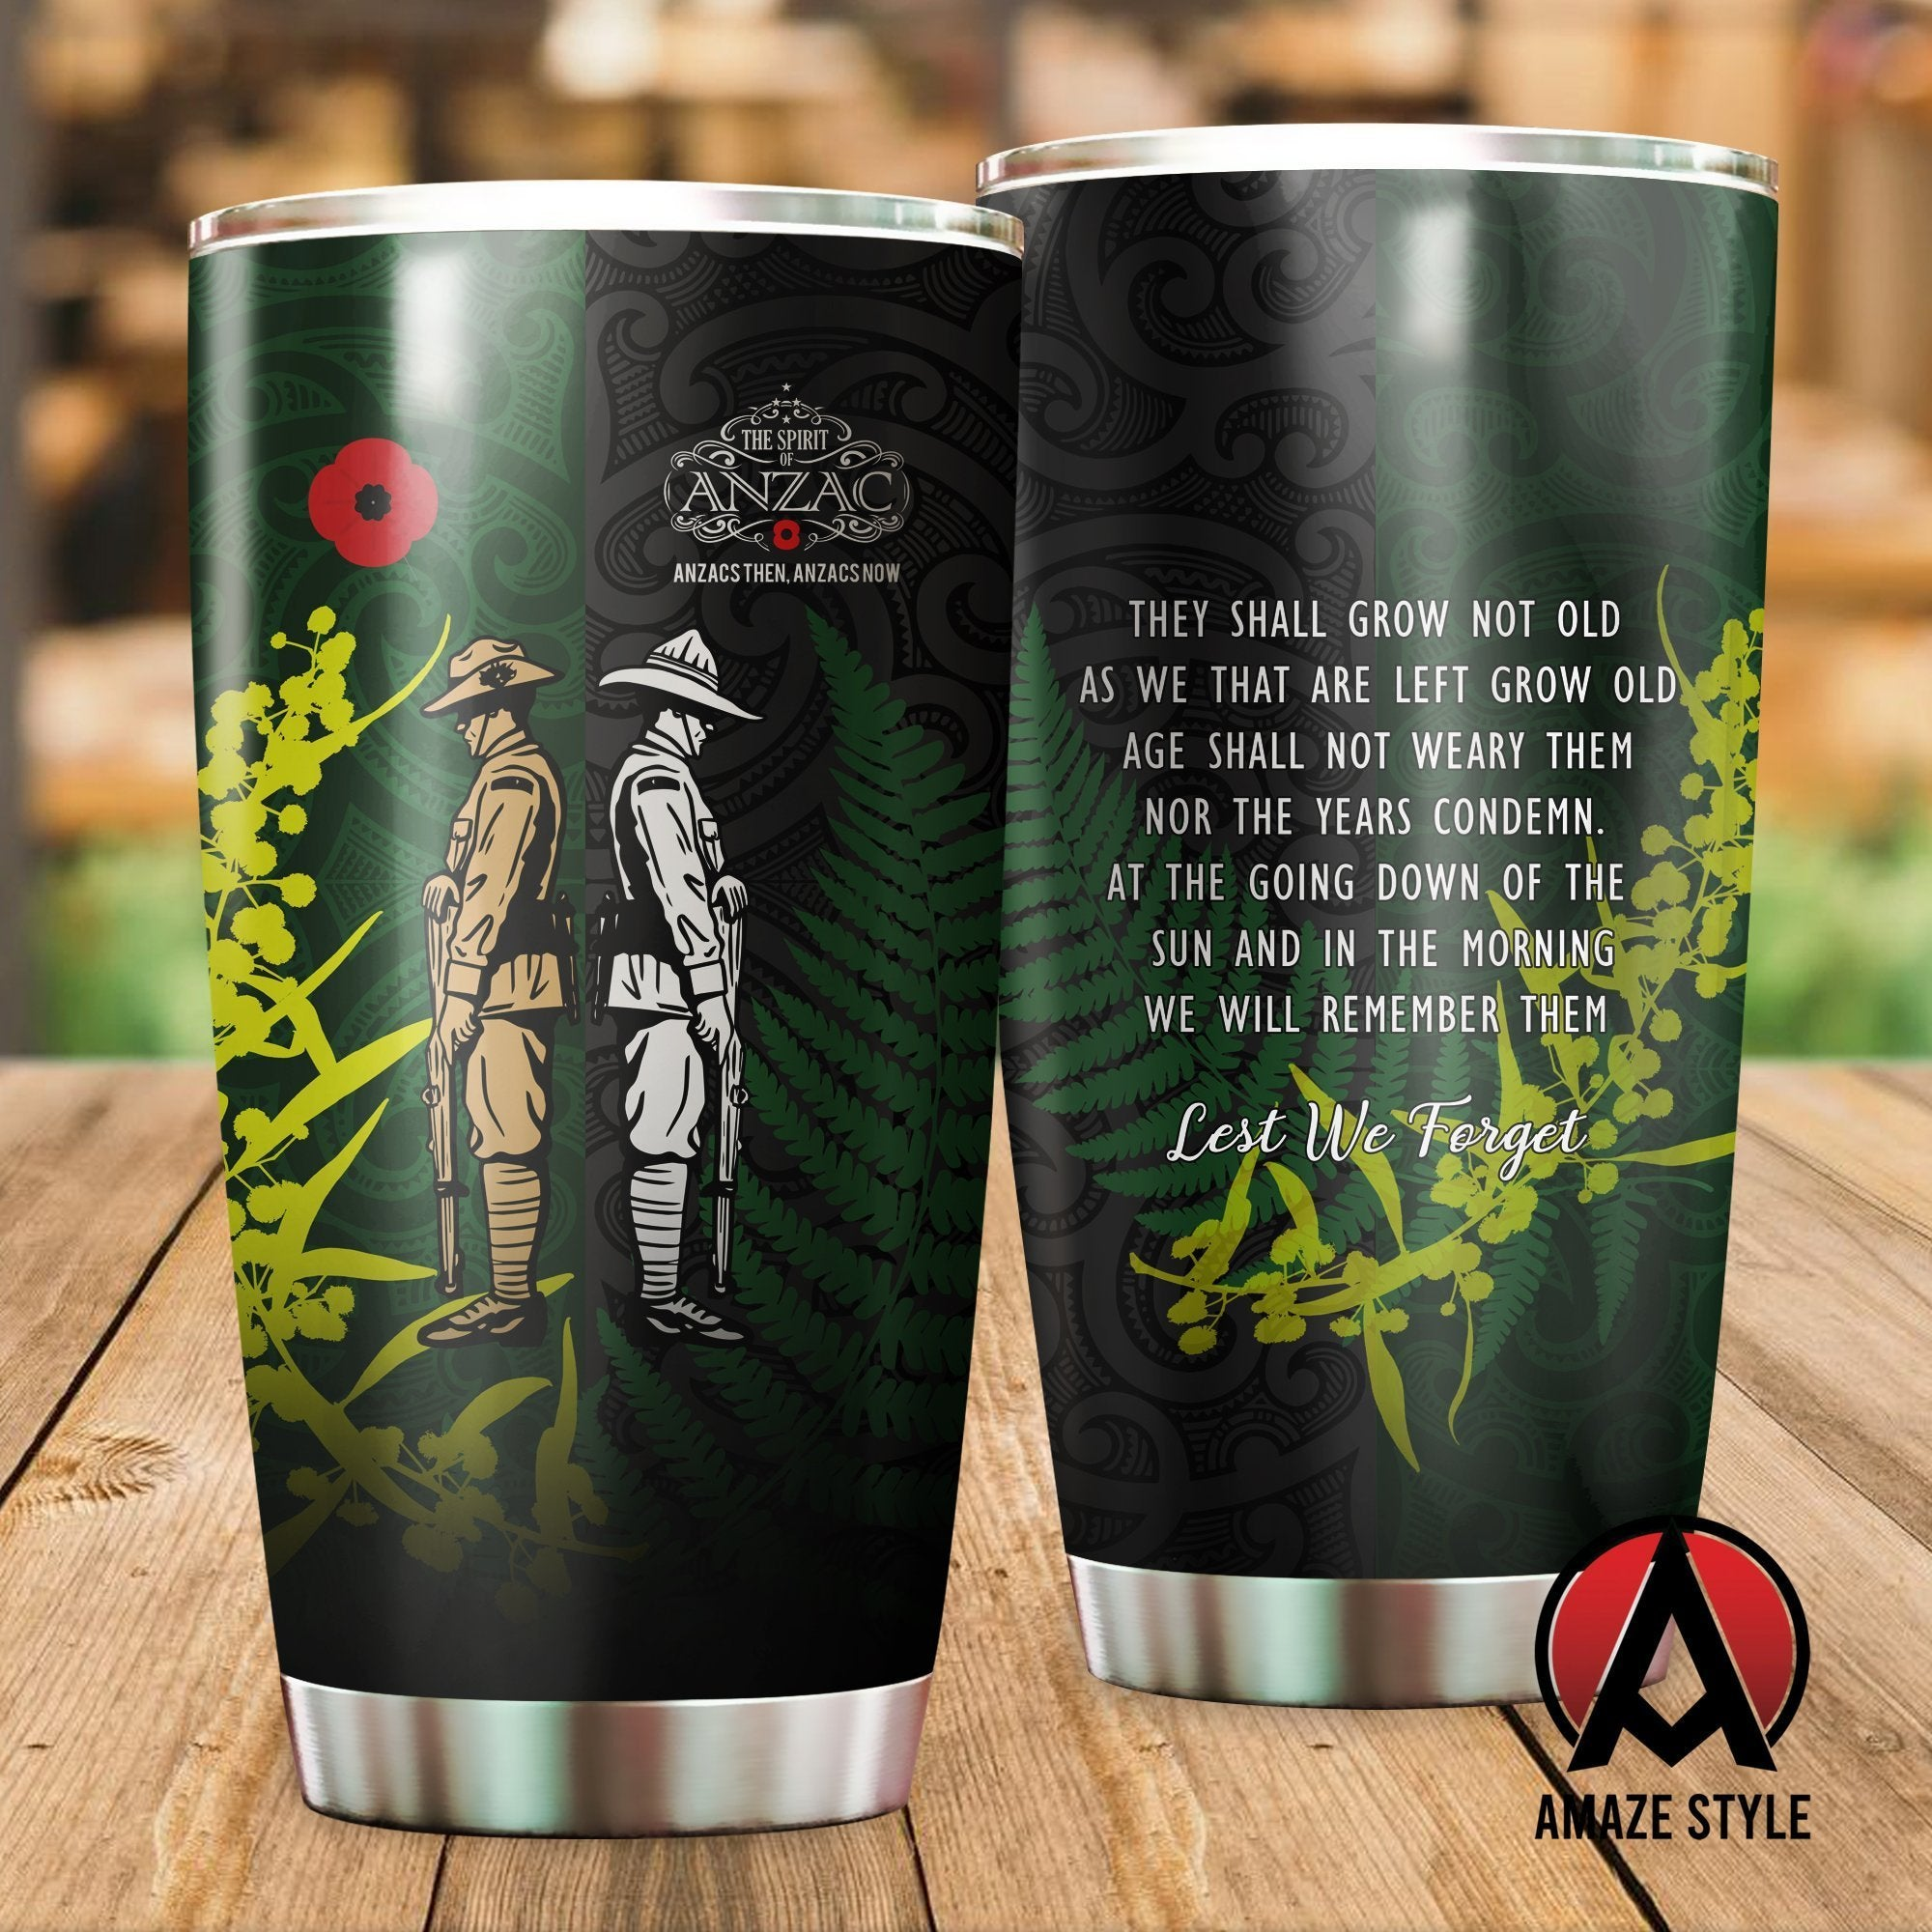 ANZAC day the ode Kiwi and Australia Soldier Stainless Steel Tumbler 20 Oz TR050303 - Amaze Style™-Tumbler